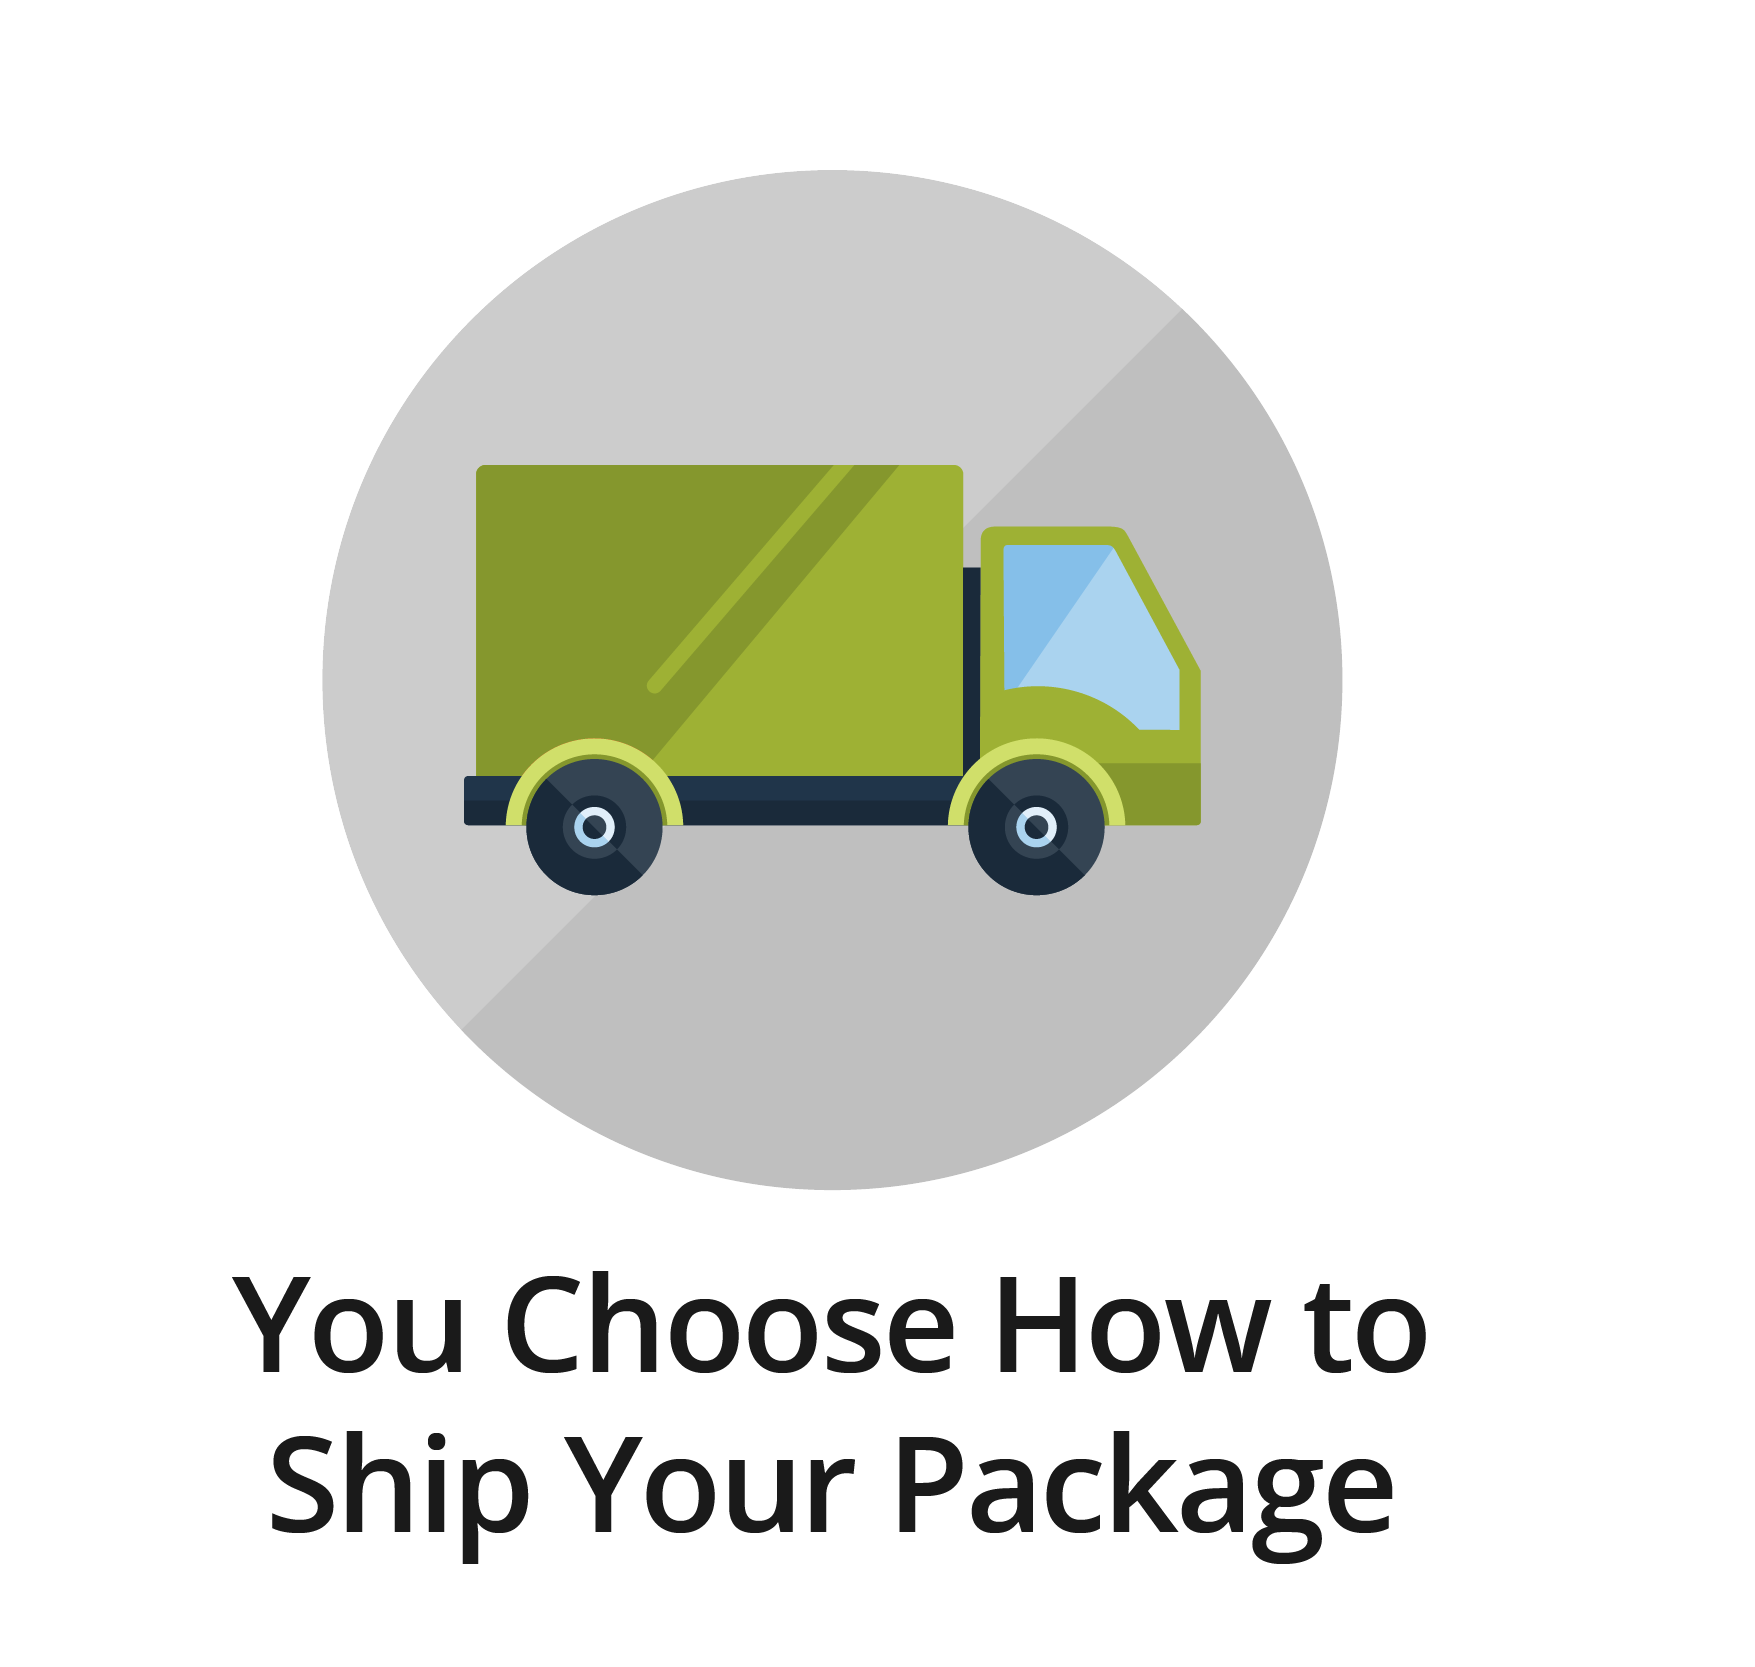 You Choose How to Ship Your Package